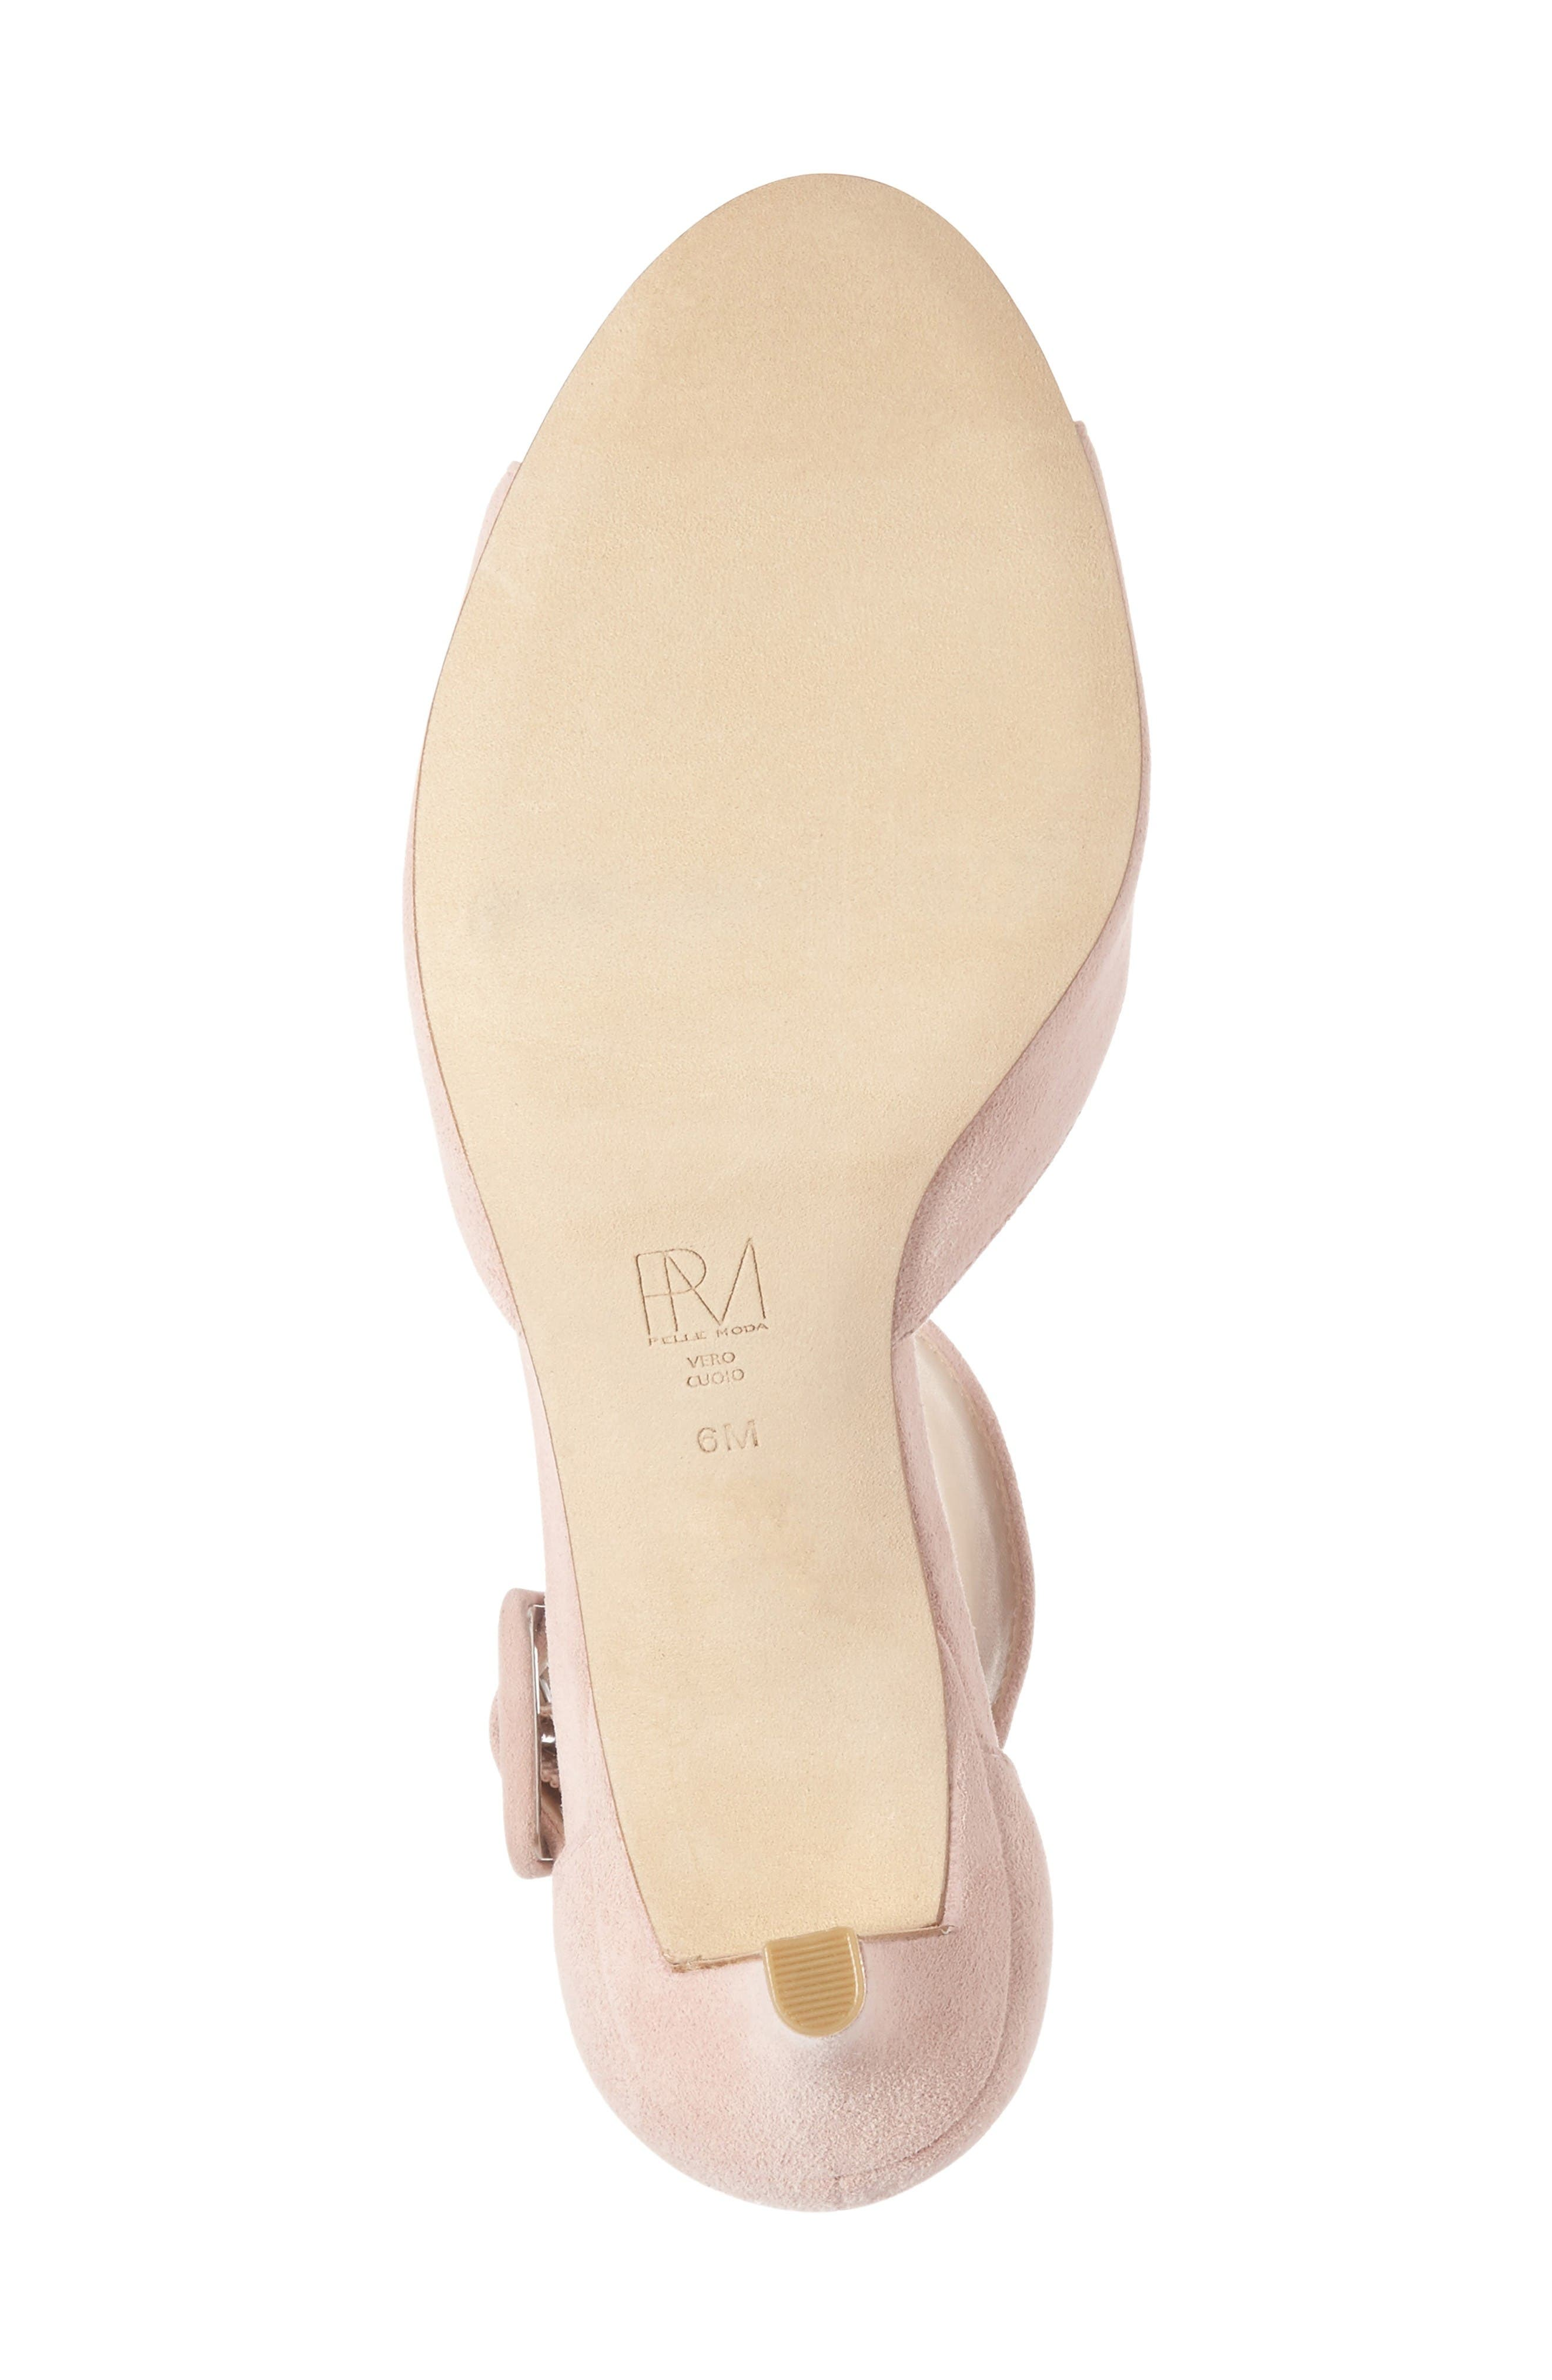 'Berlin' Ankle Strap Sandal,                             Alternate thumbnail 4, color,                             Pale Pink Leather